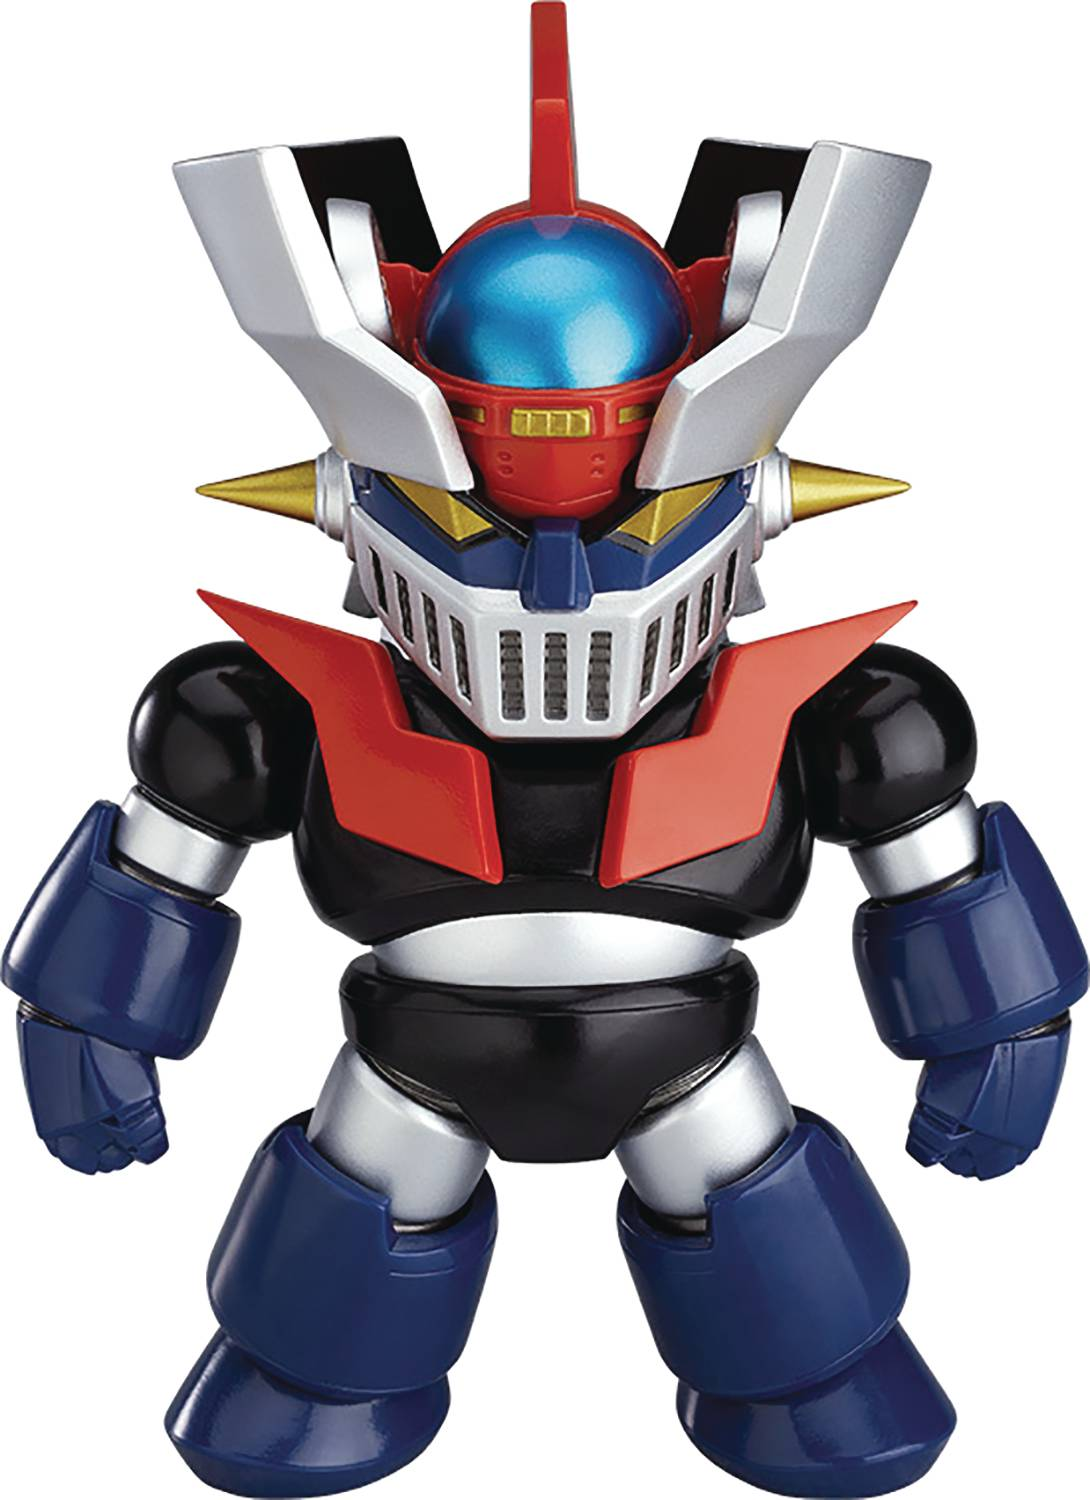 VINYL SHOGUN OMEGA FORCE MAZINGER Z SOFT VINYL ROBOT FIG